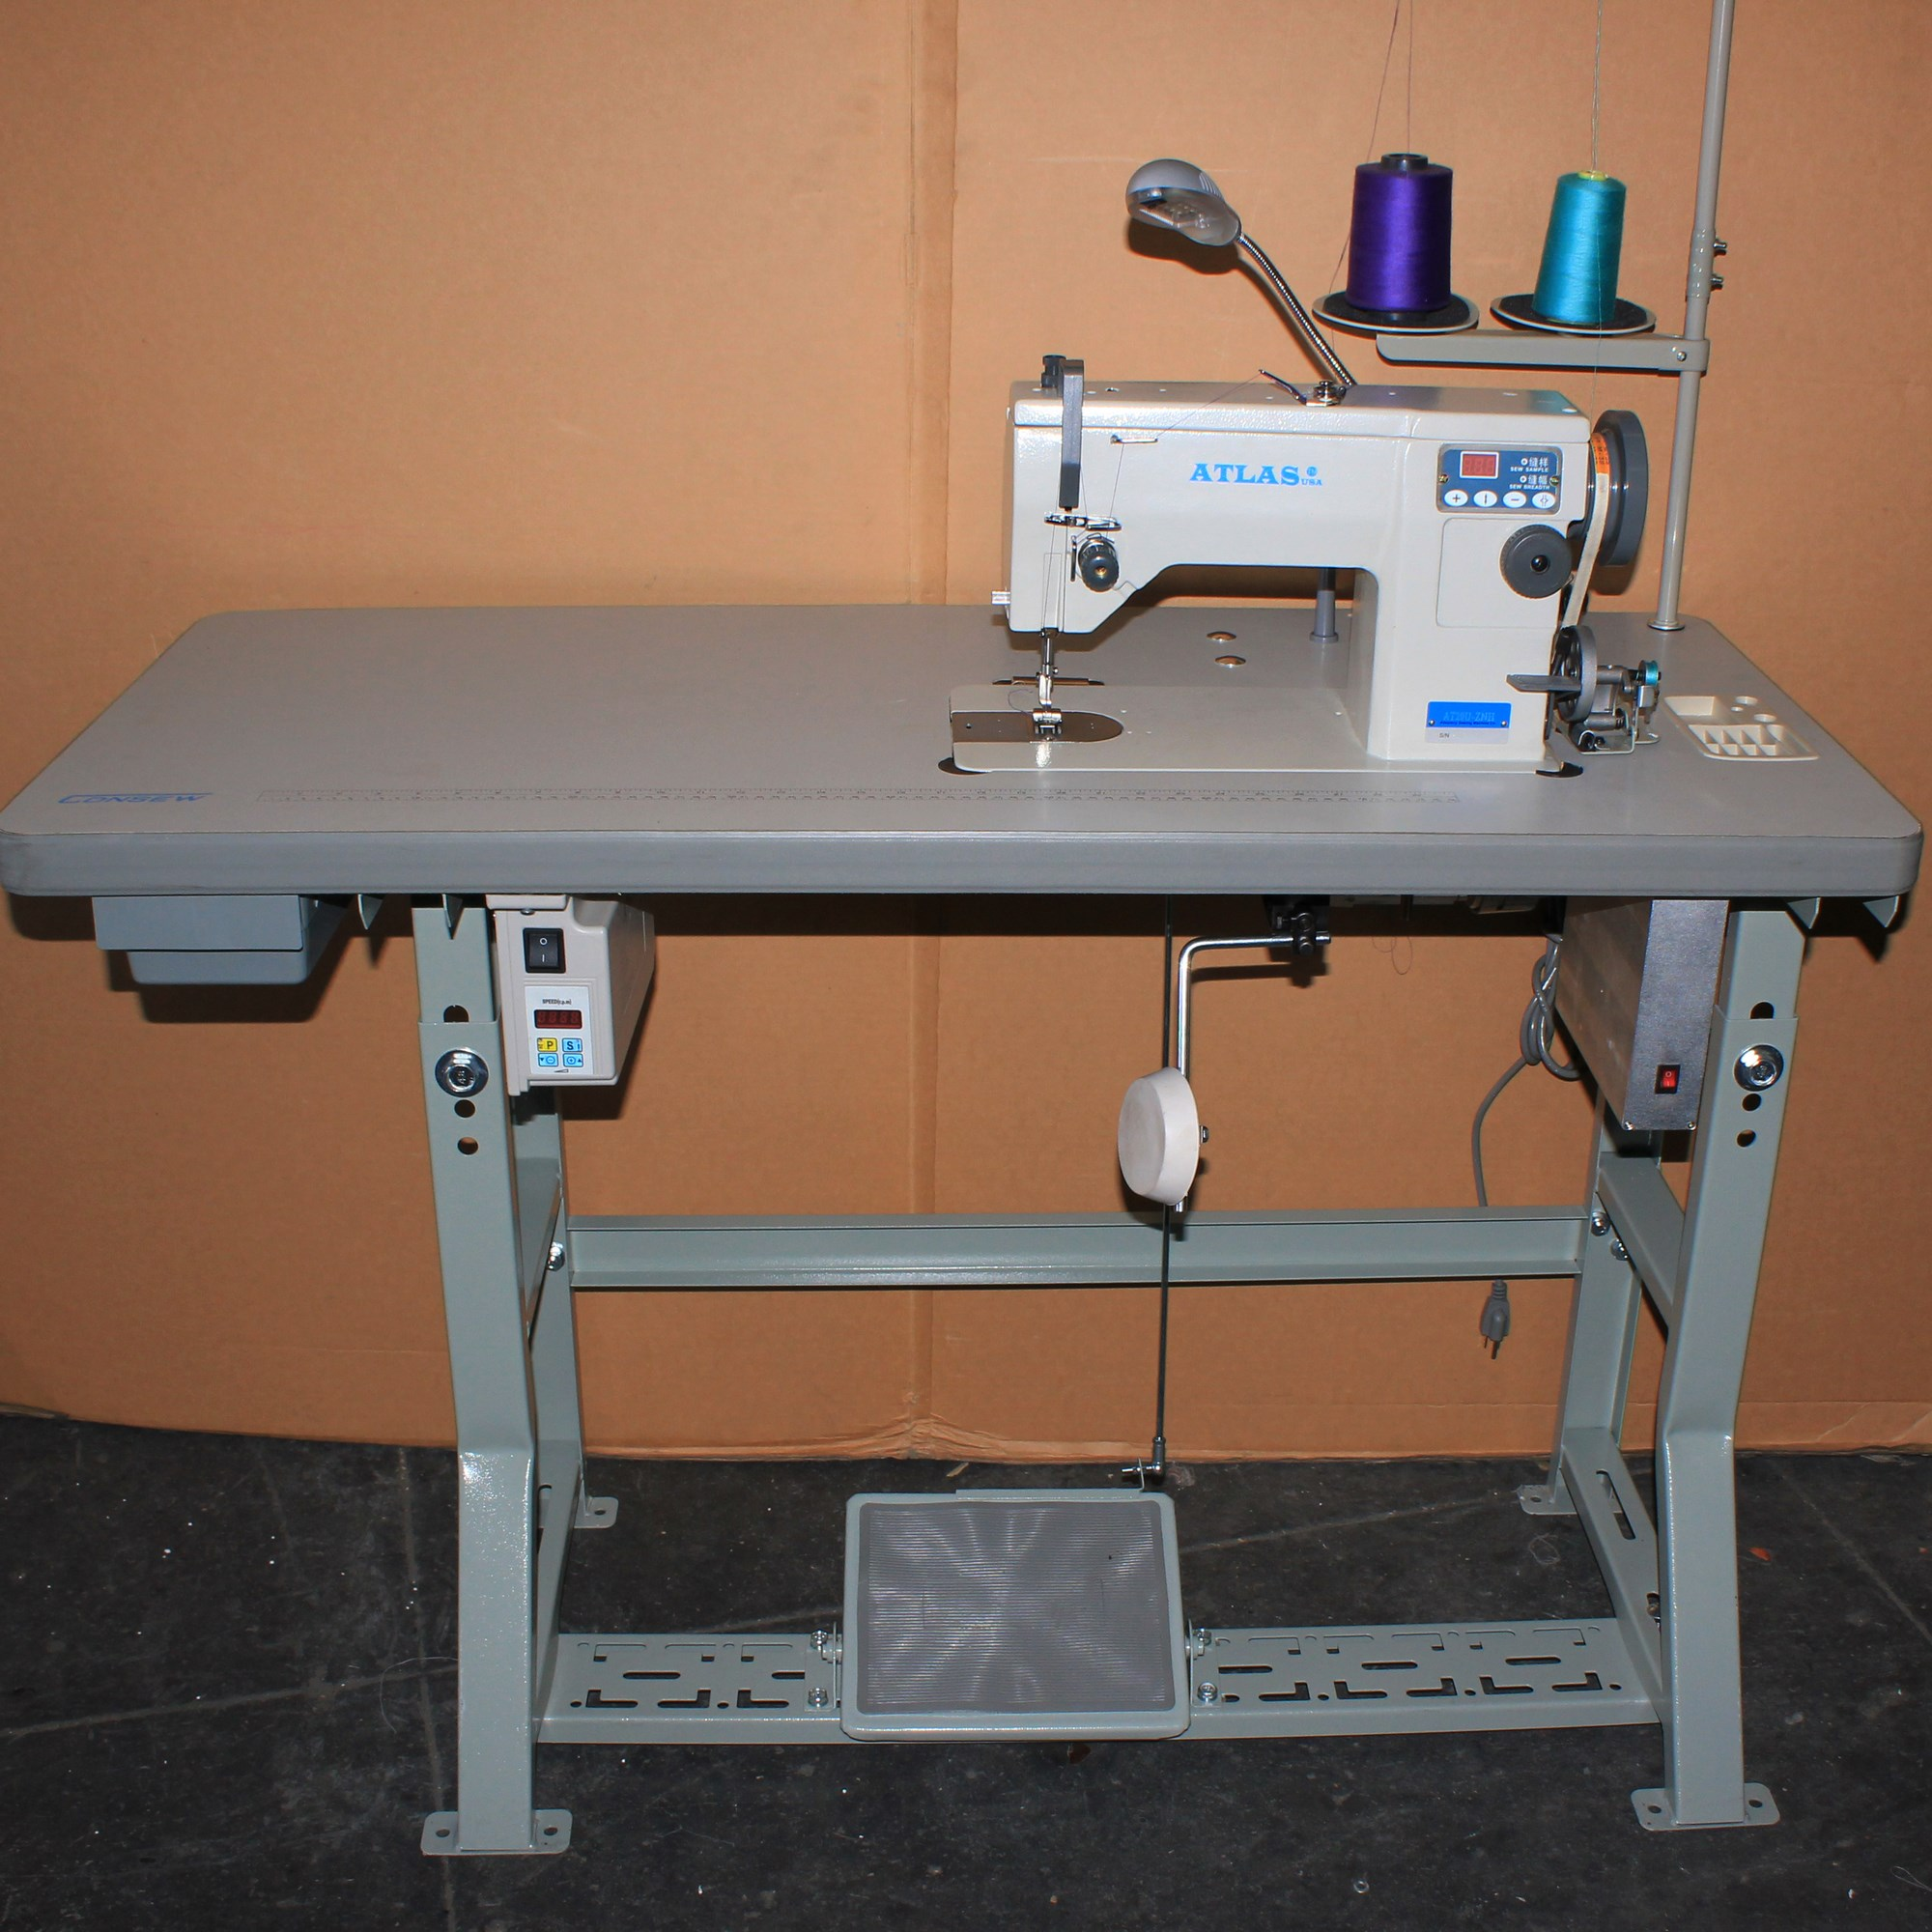 zigzag sewing machine